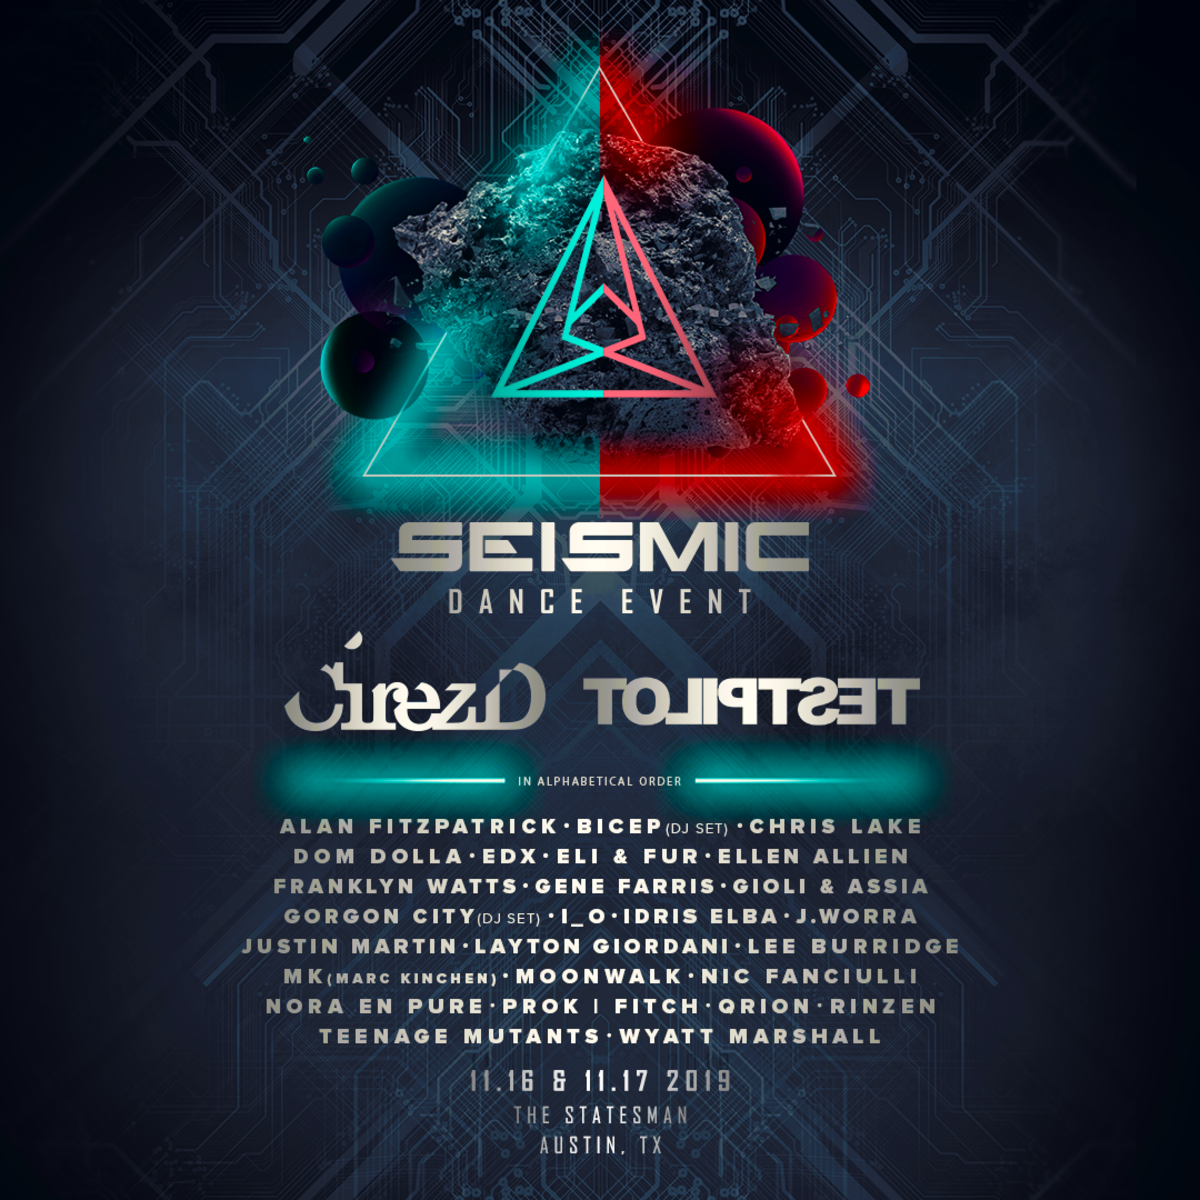 Seismic Dance Event 2019 Lineup